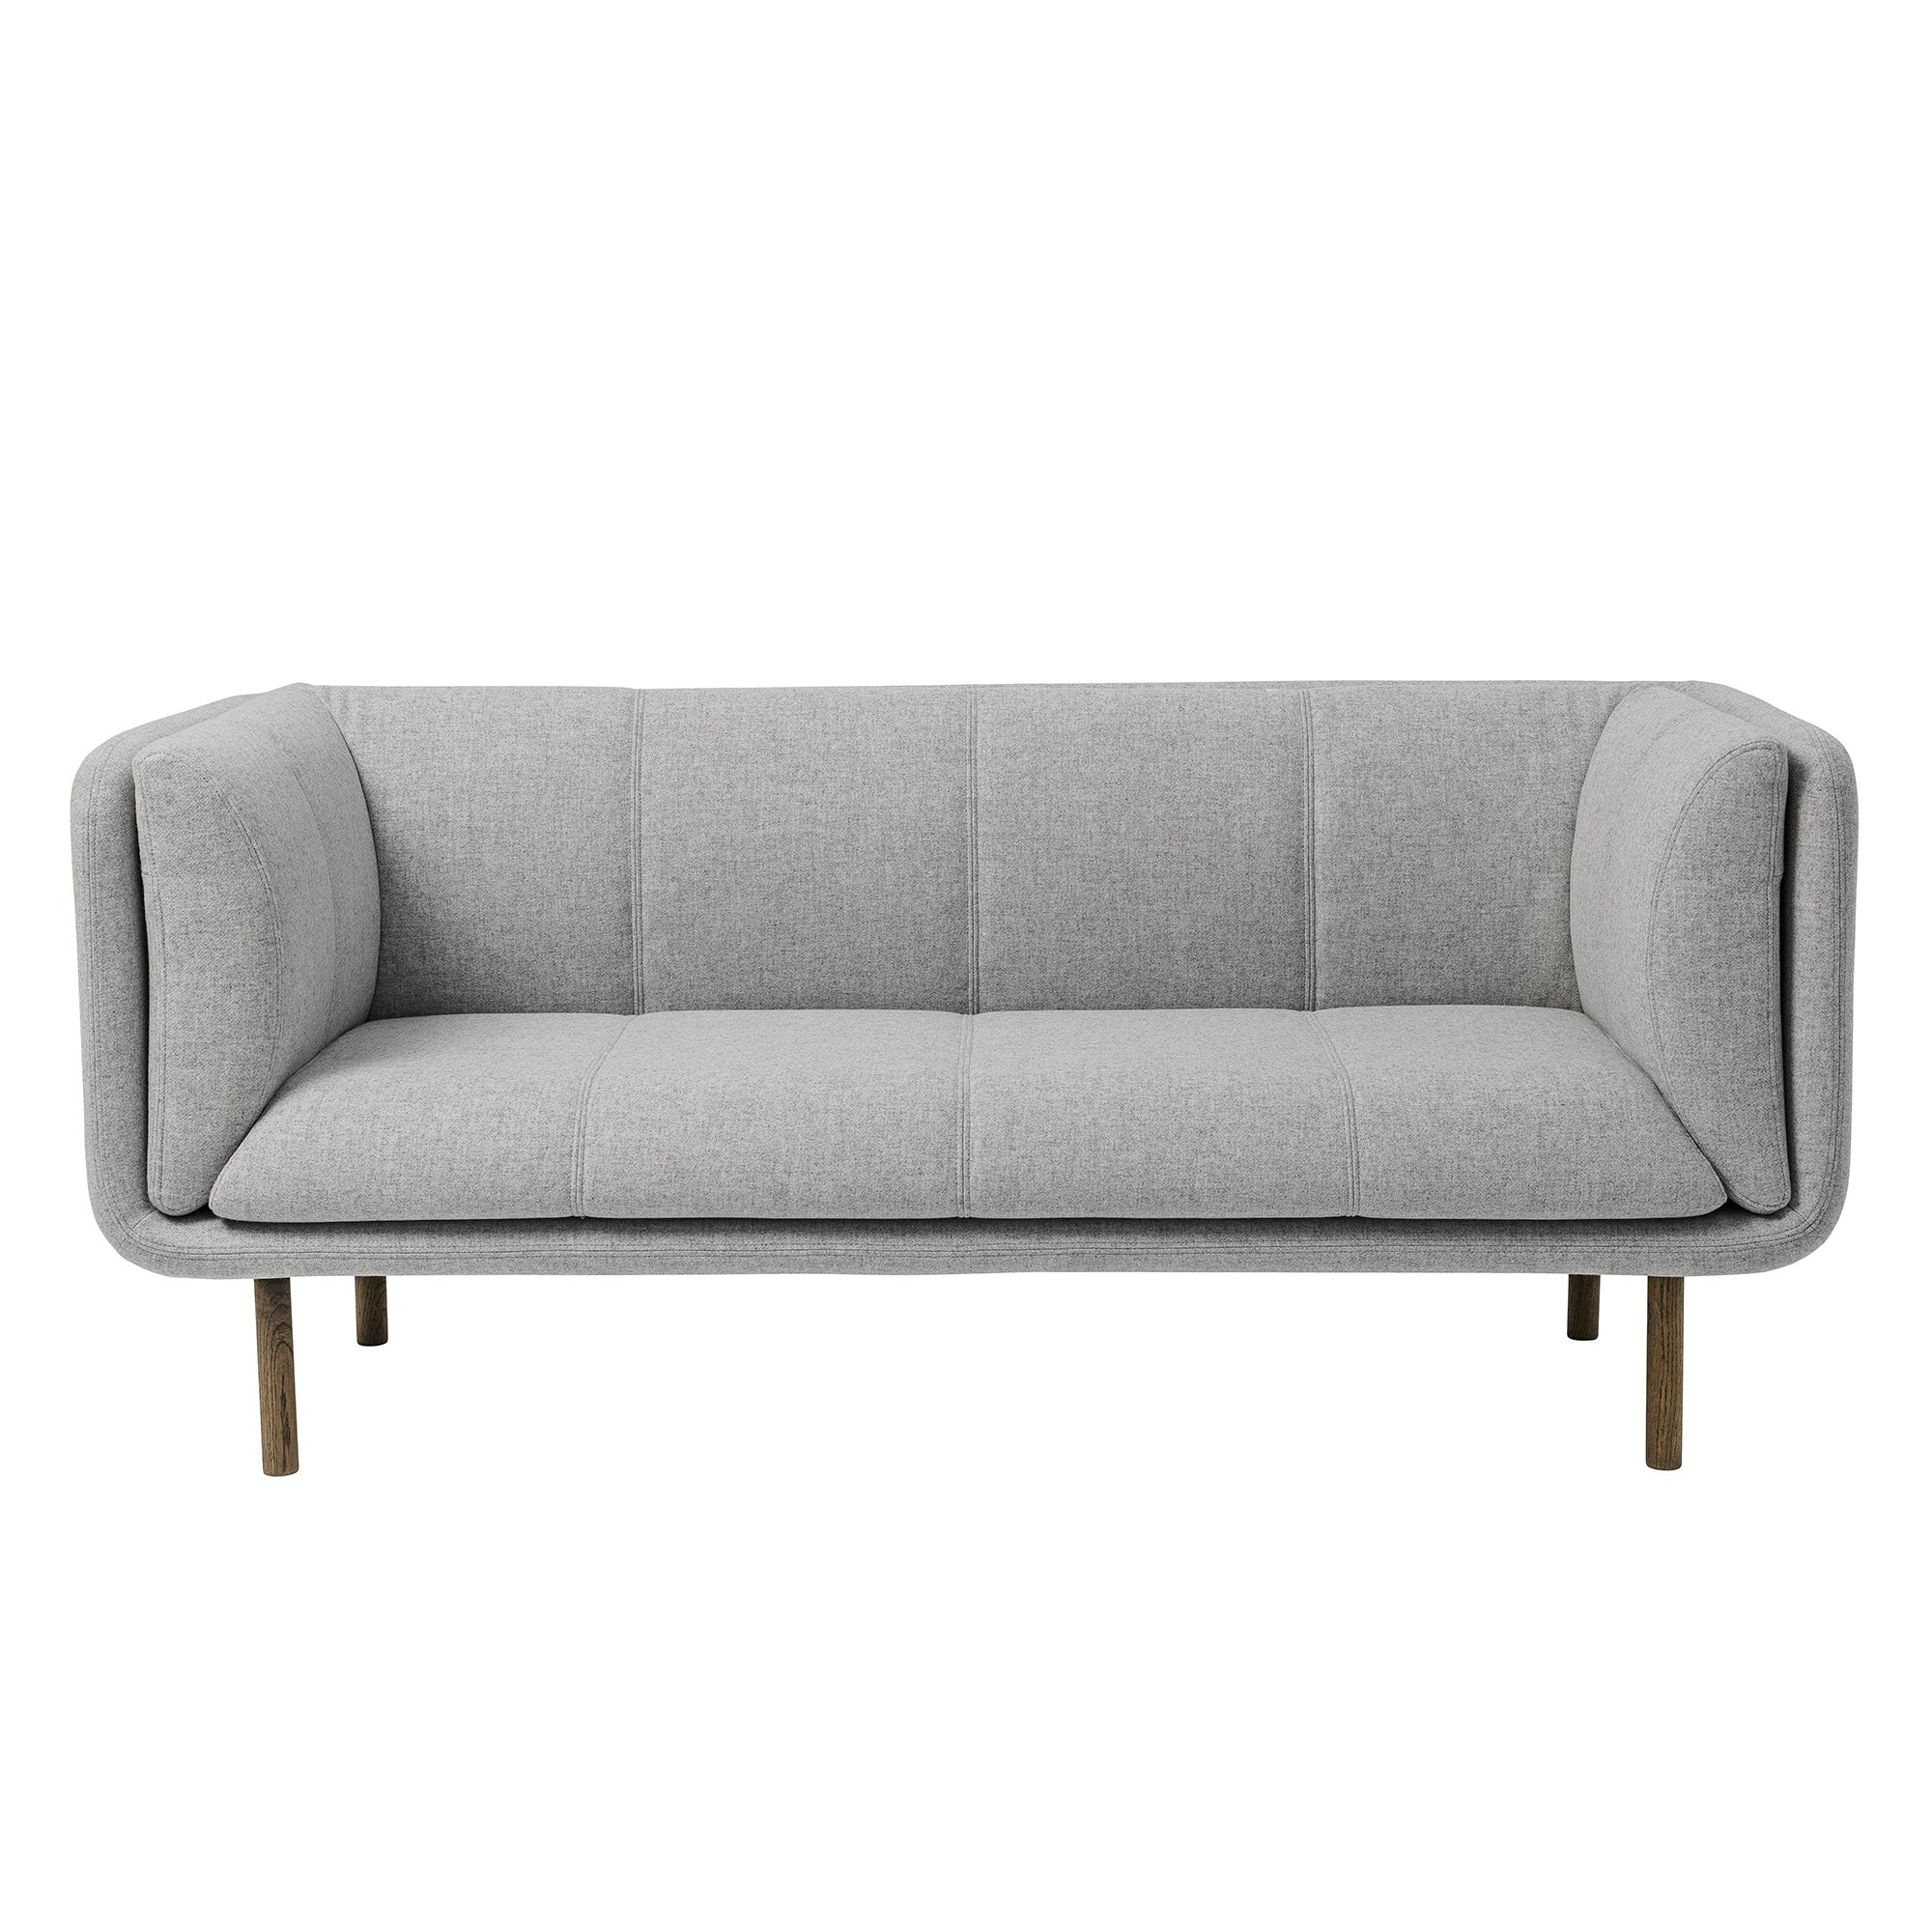 Image of   Bloomingville Stay Sofa, Grå, Uld